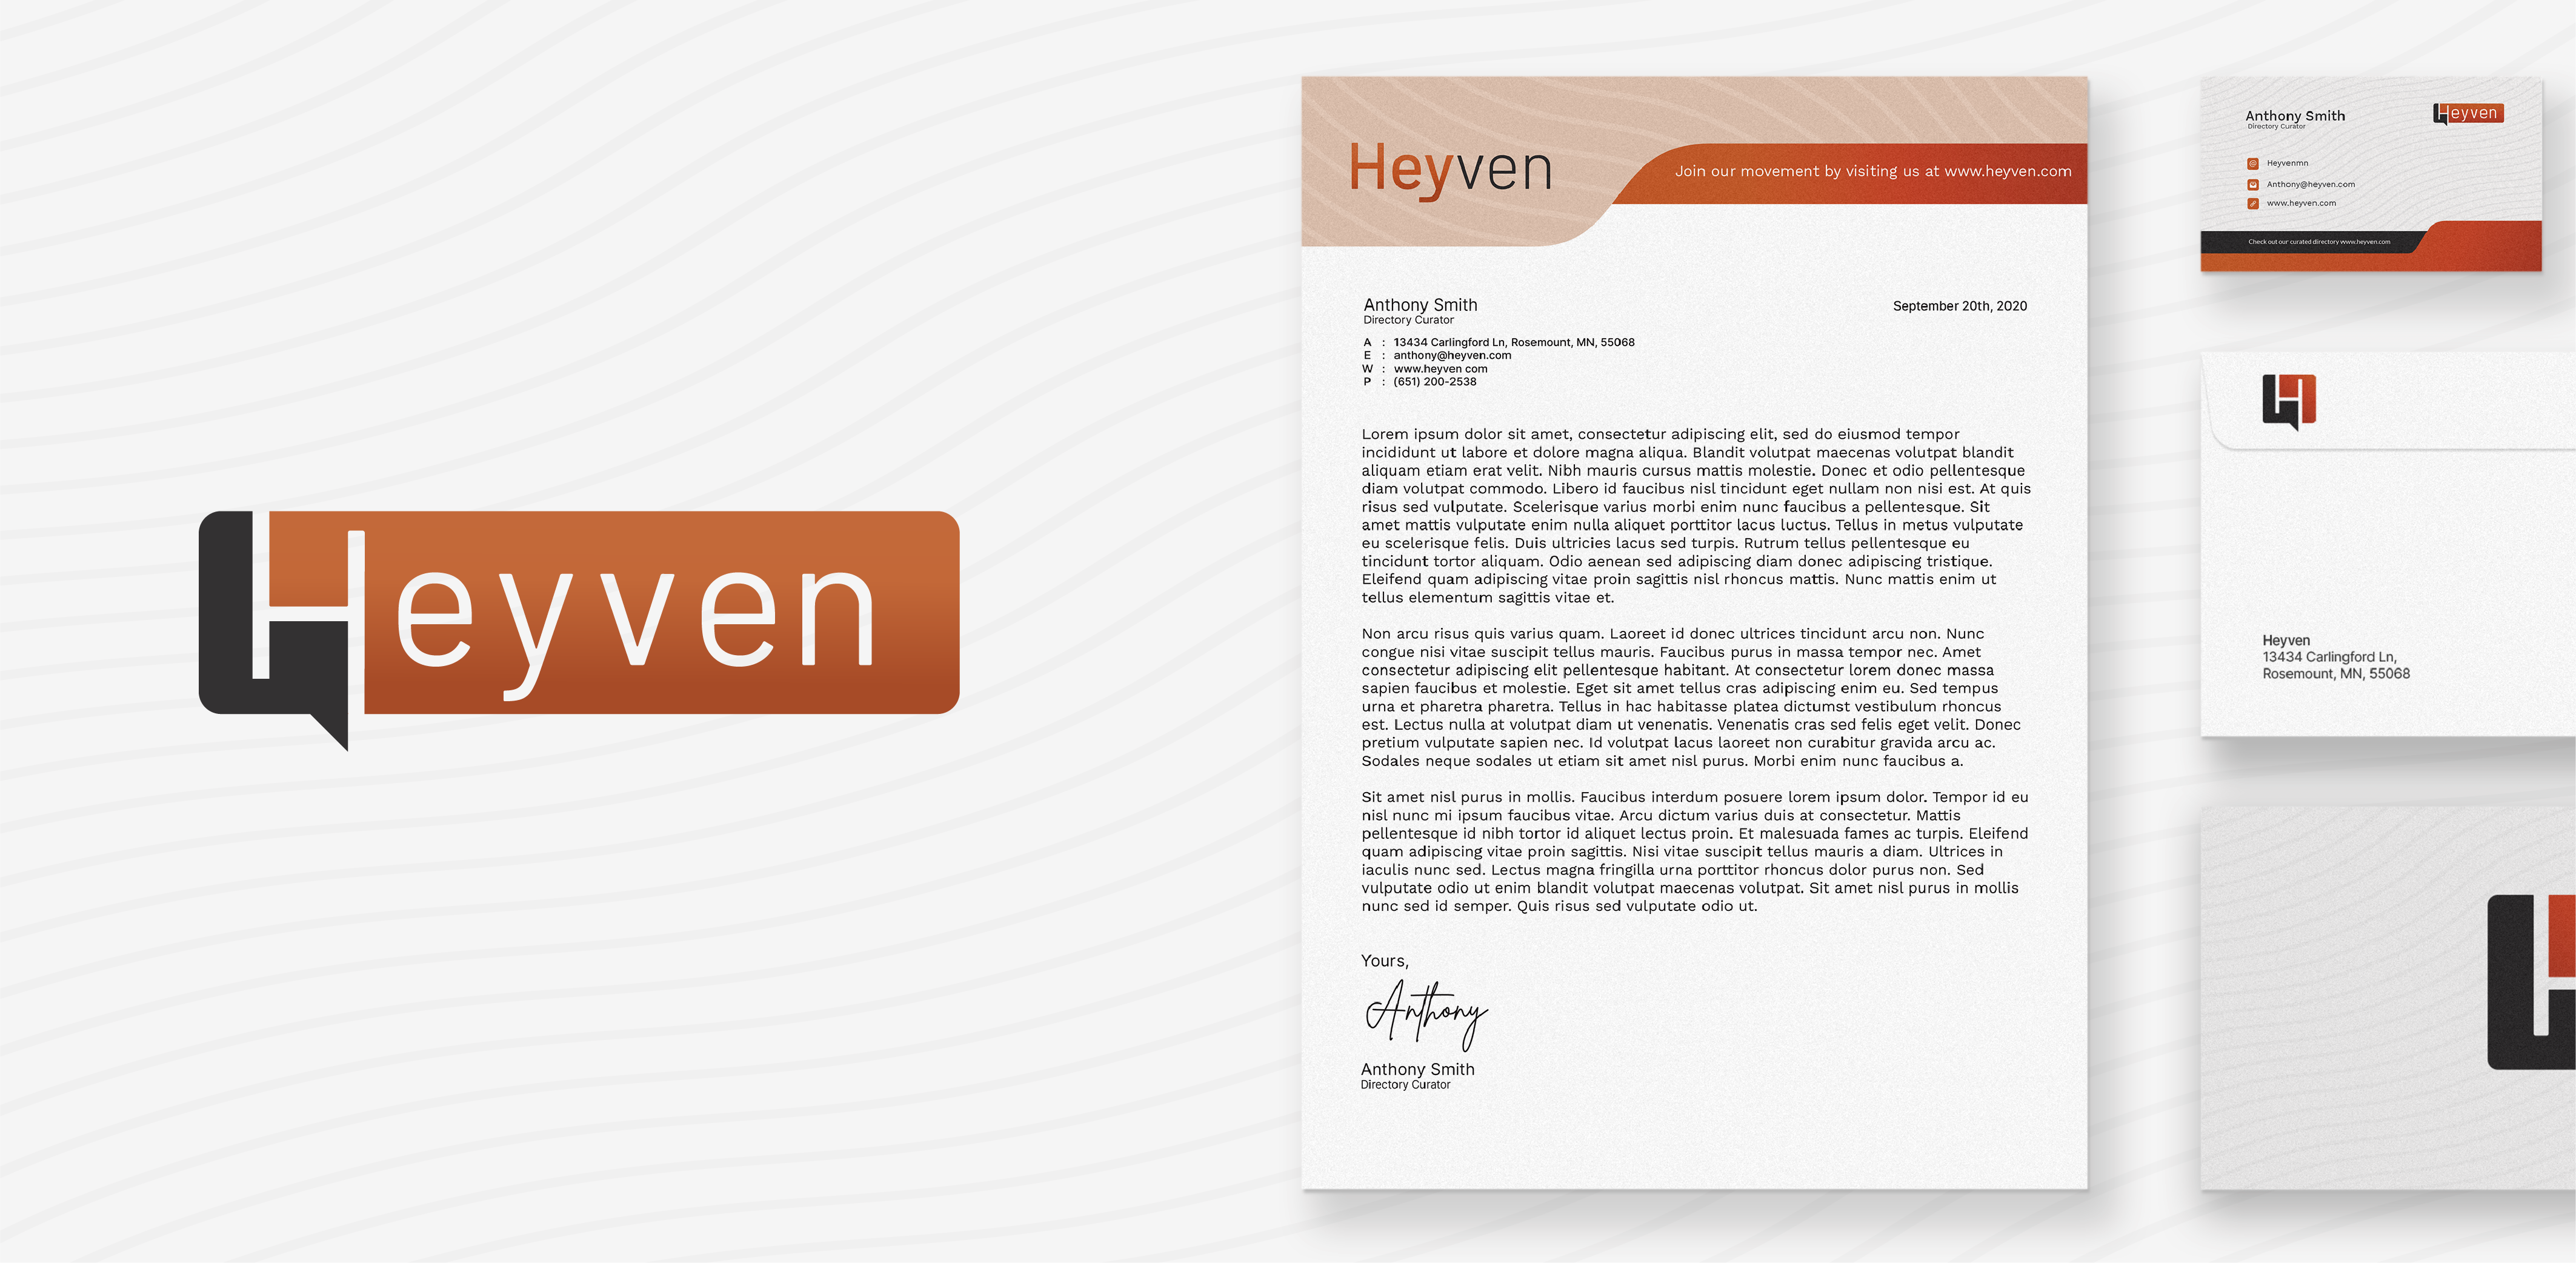 Heyven Print Materials Mock Up